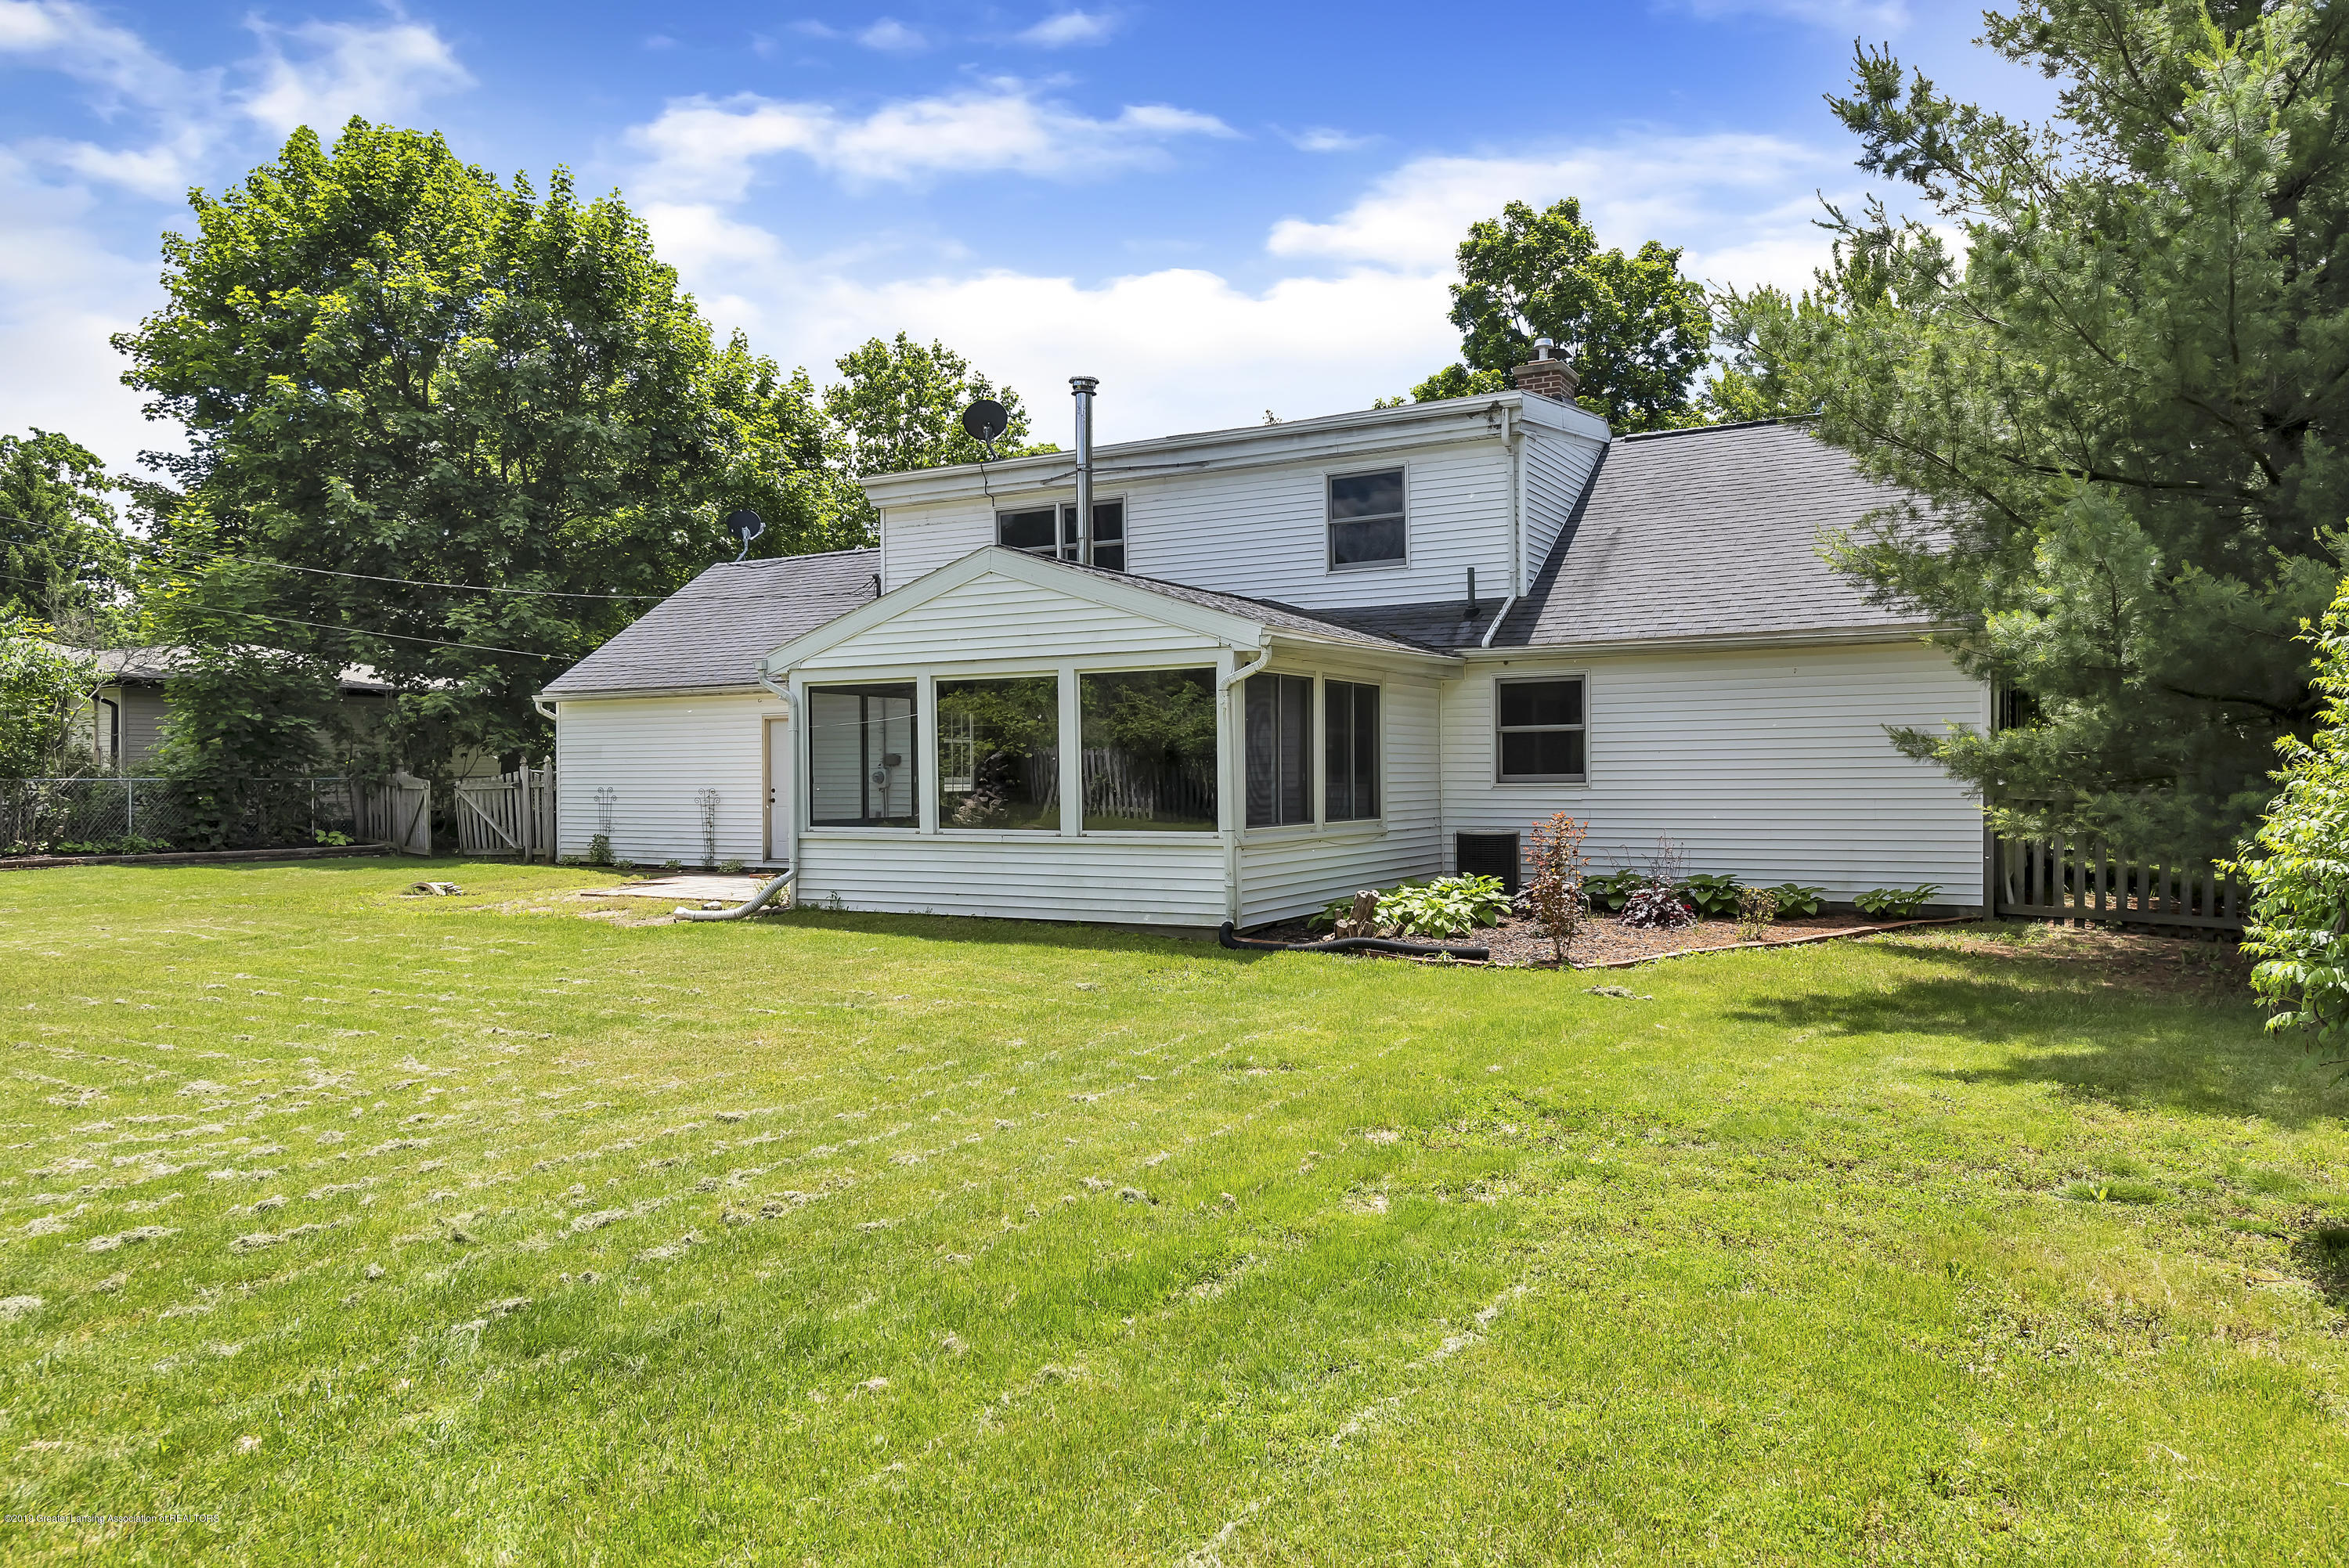 699 Sherwood Rd - 699-E-Sherwood-Rd-Williamston-windowstil - 36